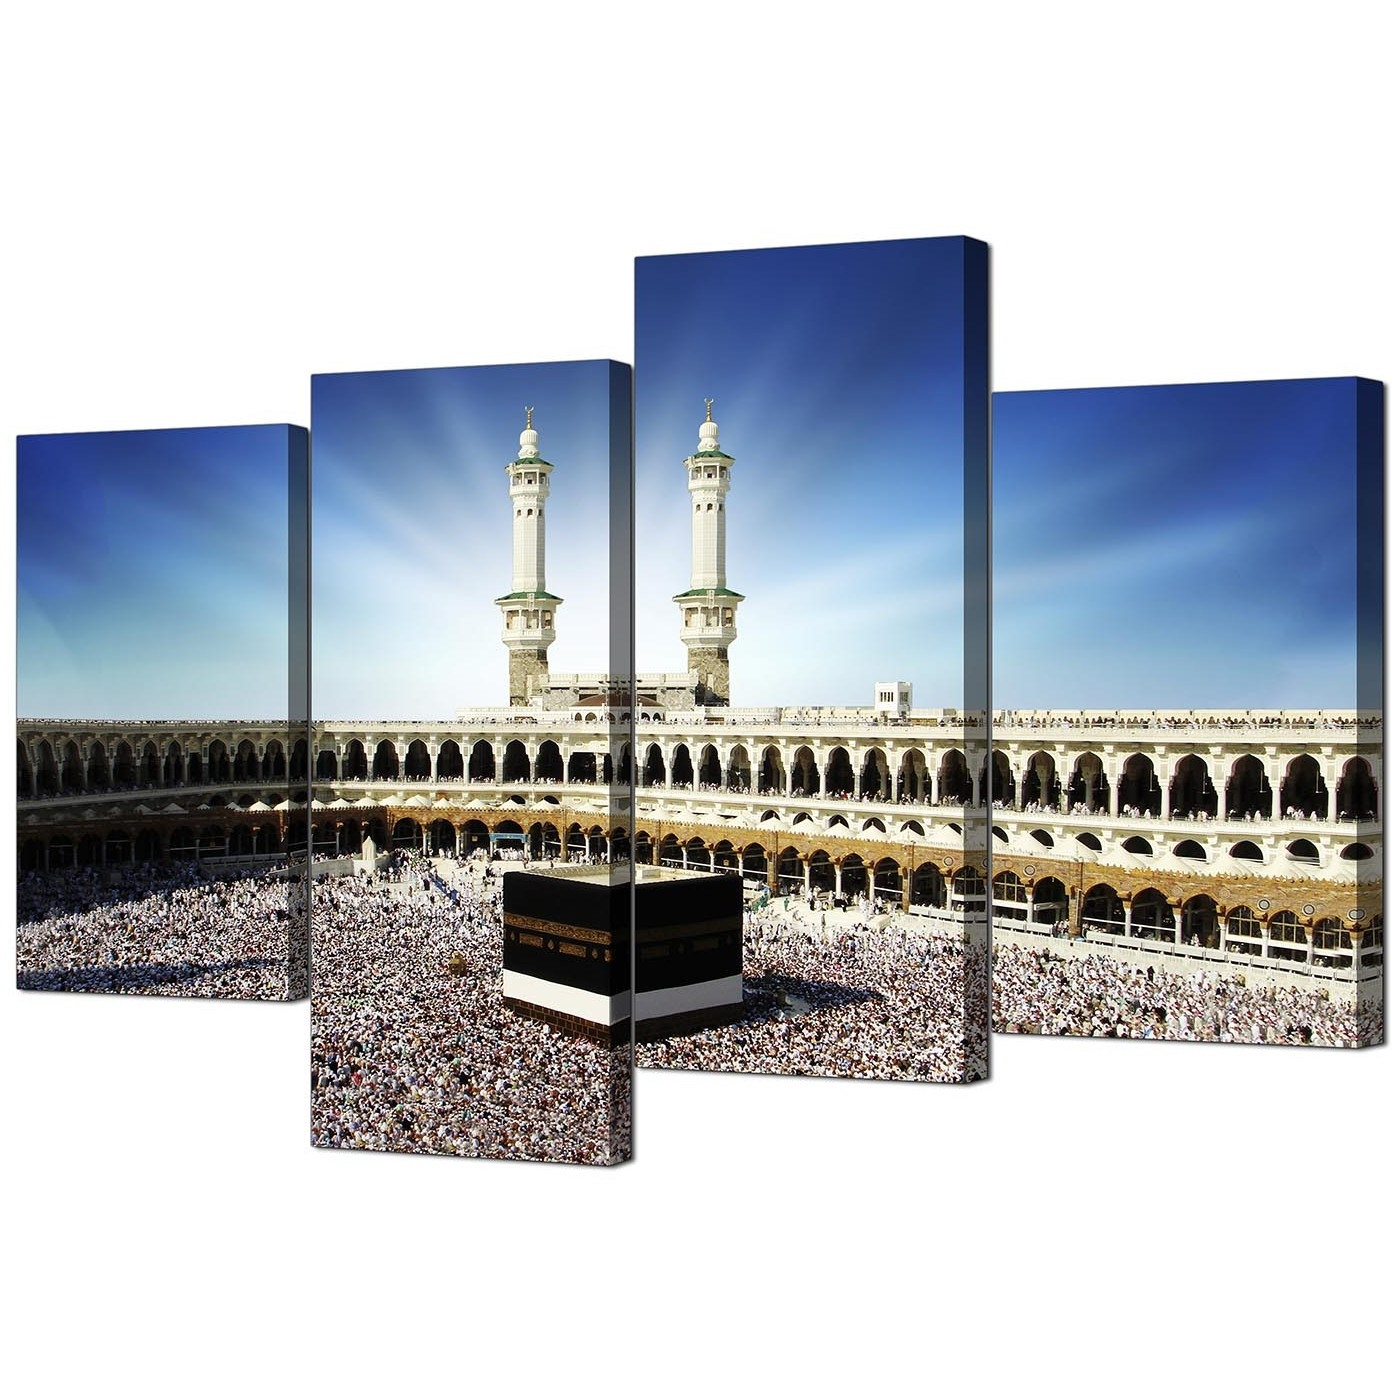 Inexpensive Canvas Wall Art Pertaining To Fashionable Islamic Canvas Wall Art Of Kaaba Hajj In Mecca For Muslims – Set Of 4 (Gallery 13 of 15)